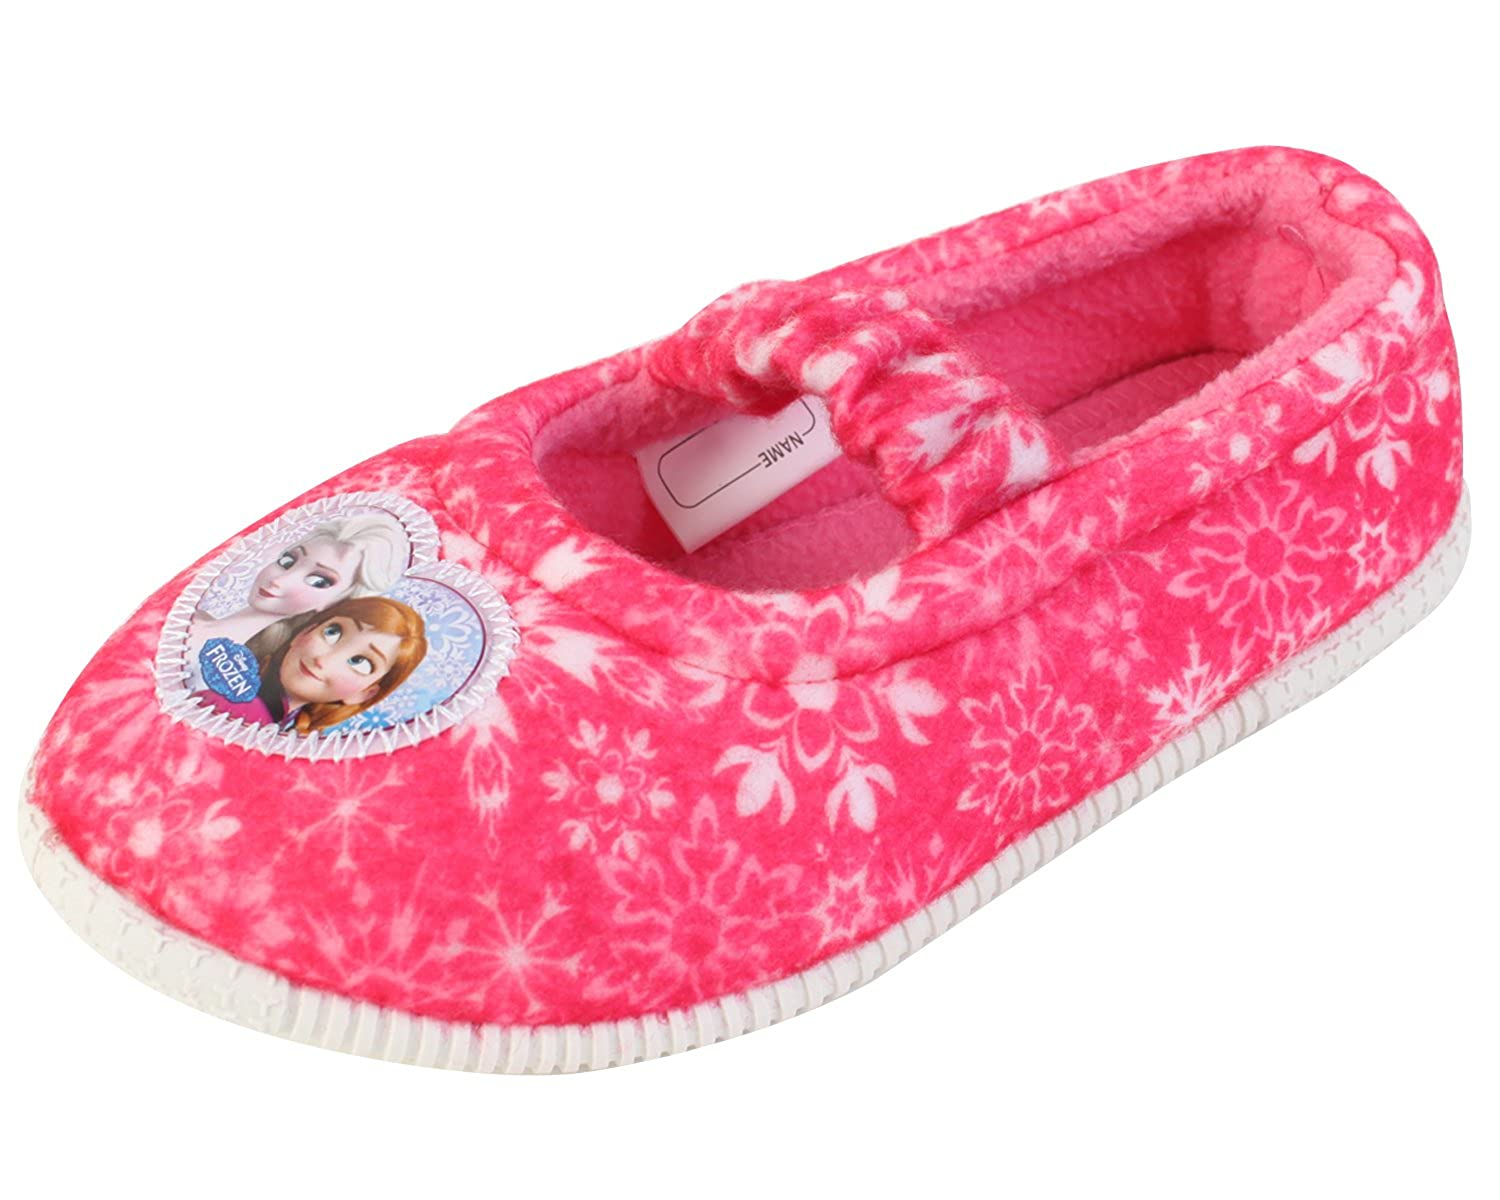 Disney Frozen Elsa Anna Girl's Pink Warm Comfort Indoor Slipper (Parallel Import/Generic Product)